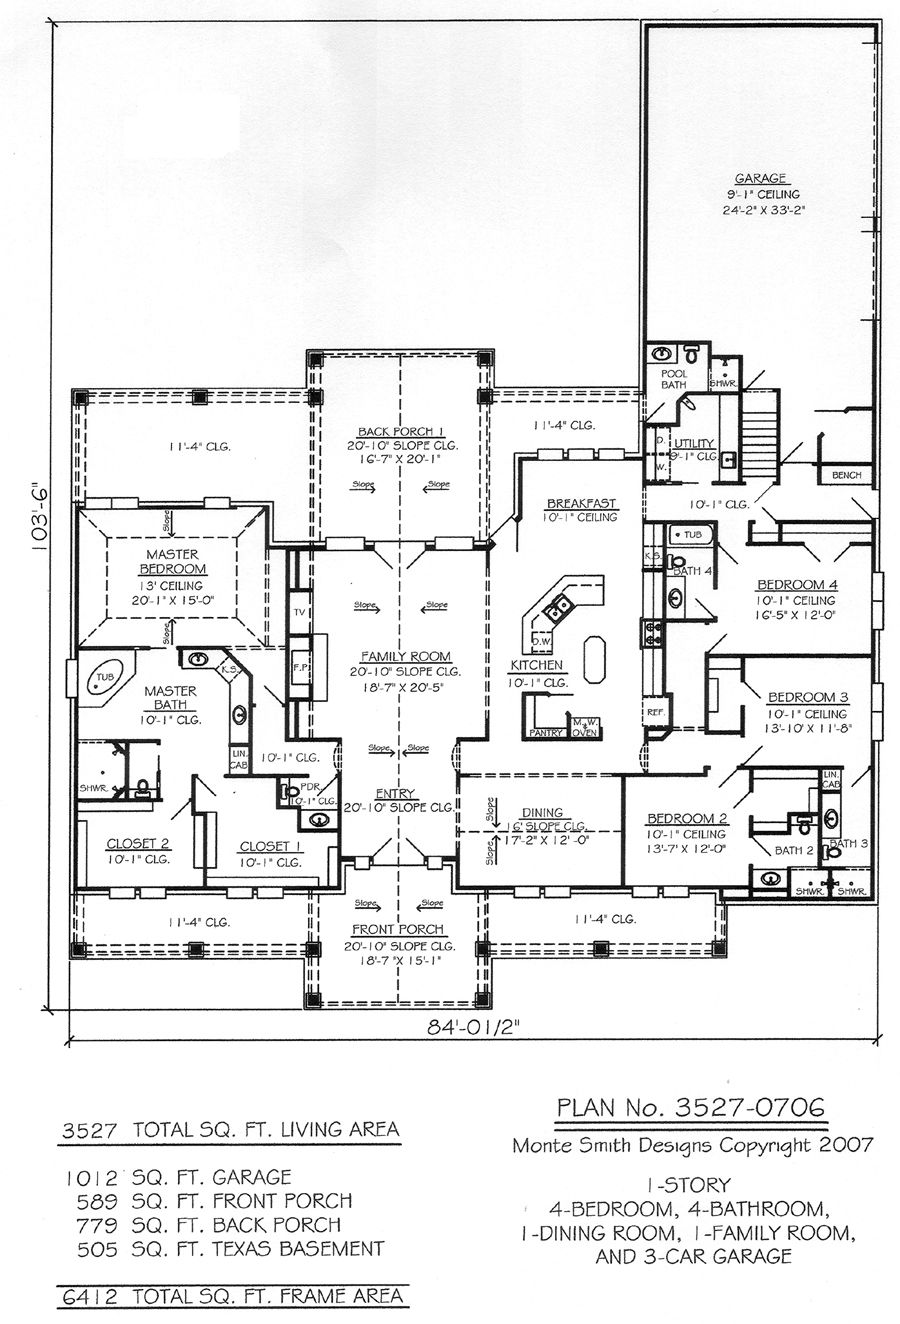 Remove bath next to bed 4 turn into 2 rooms Playroom and office – 4 Bedroom 3 Car Garage House Plans